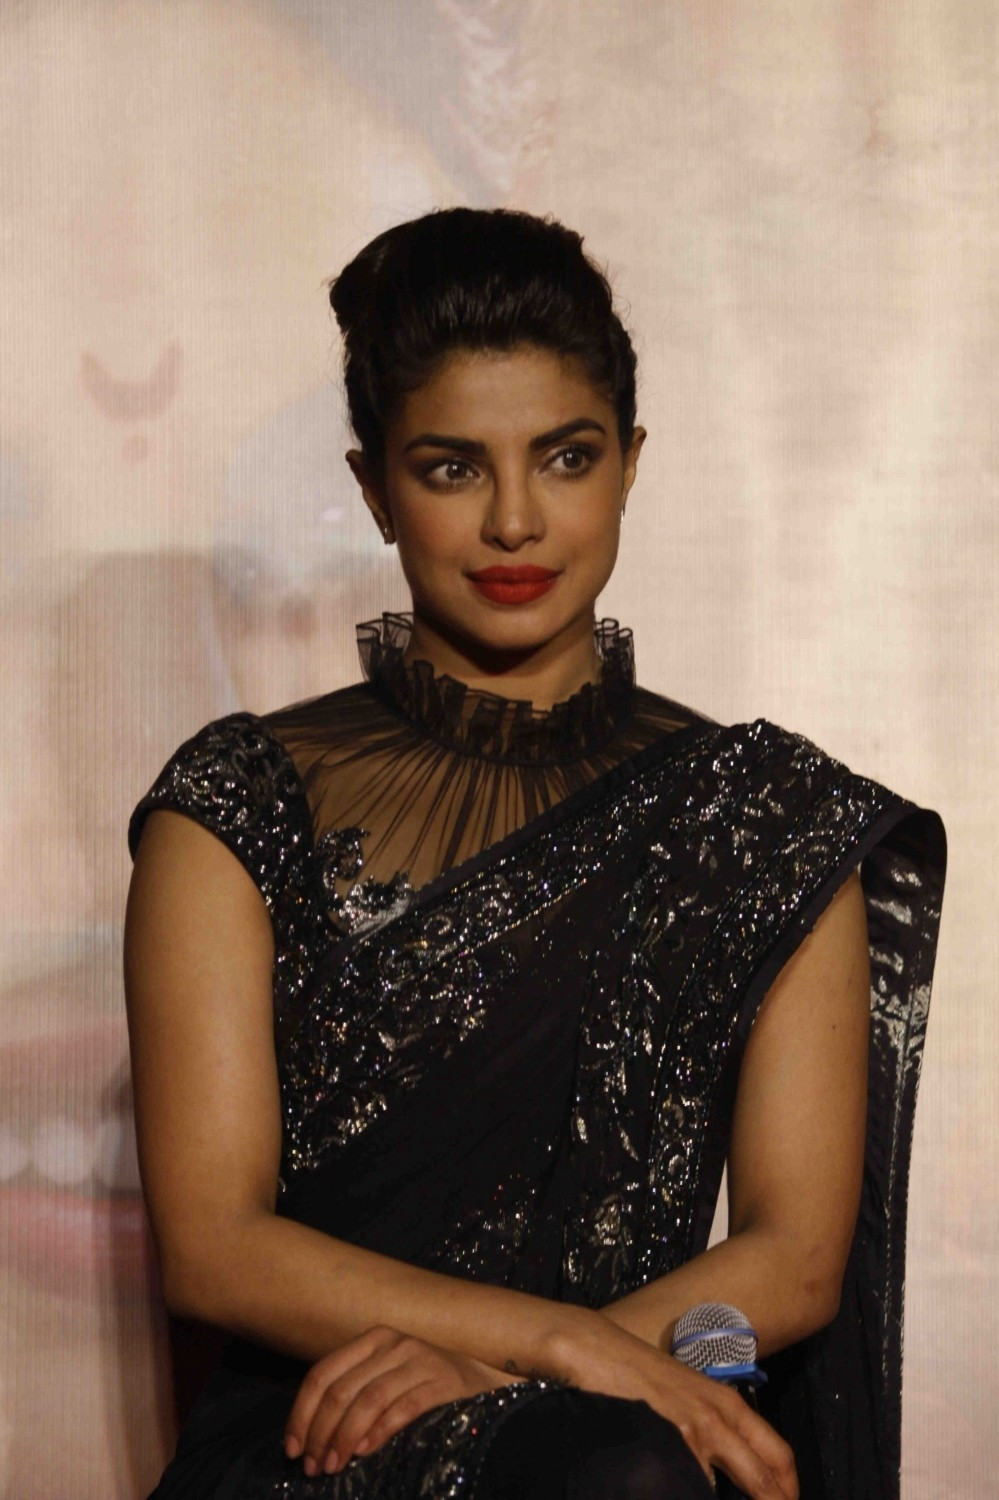 Priyanka Chopra,Priyanka Chopra in Time's list,Priyanka Chopra in Time's list of 100 Most Influential People,Priyanka Chopra the Most Influential People,actress Priyanka Chopra,Priyanka Chopra pics,Priyanka Chopra images,Priyanka Chopra photos,P